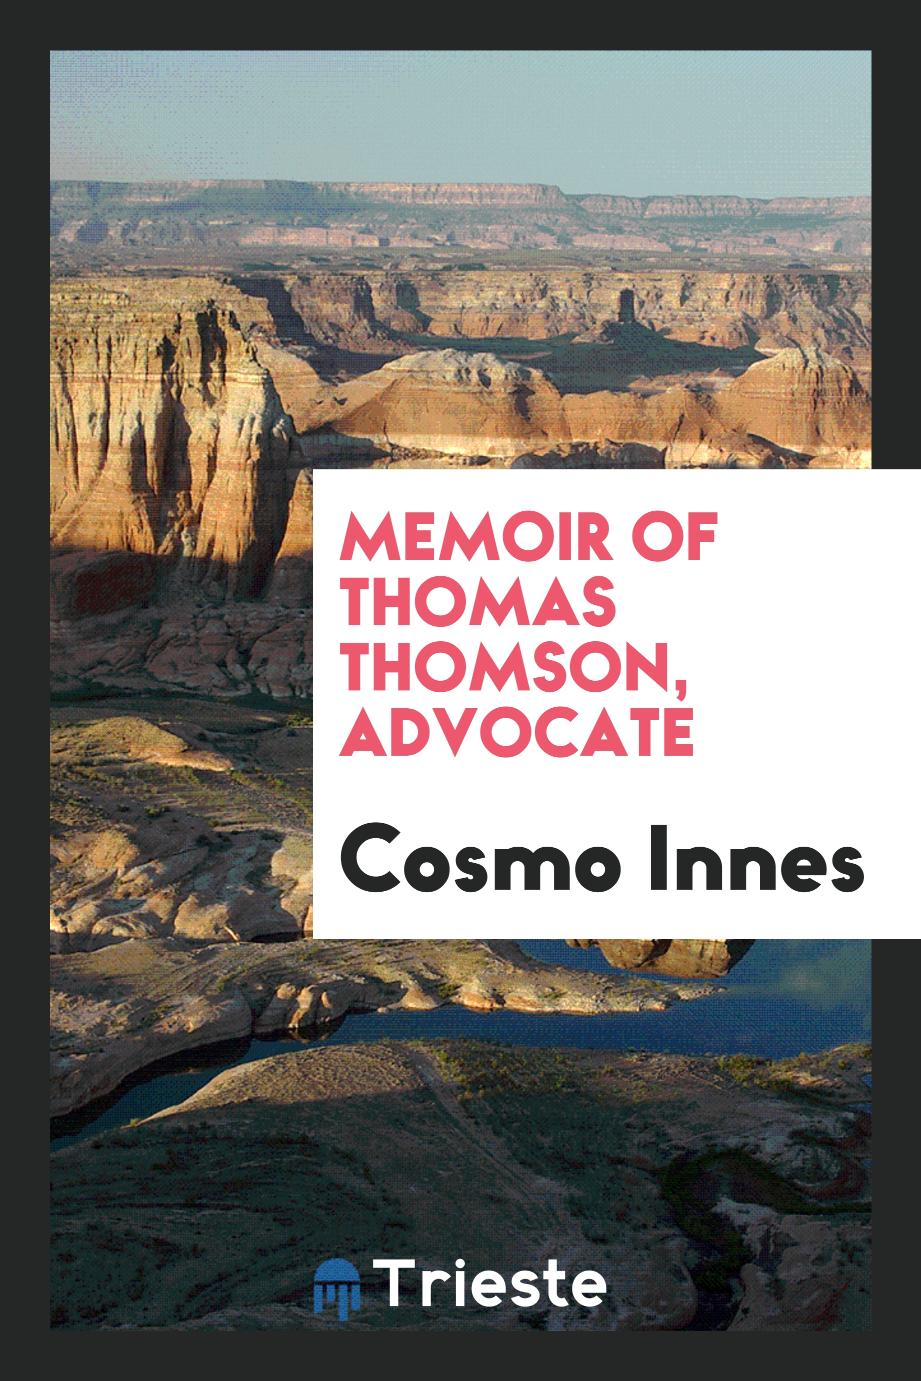 Memoir of Thomas Thomson, Advocate